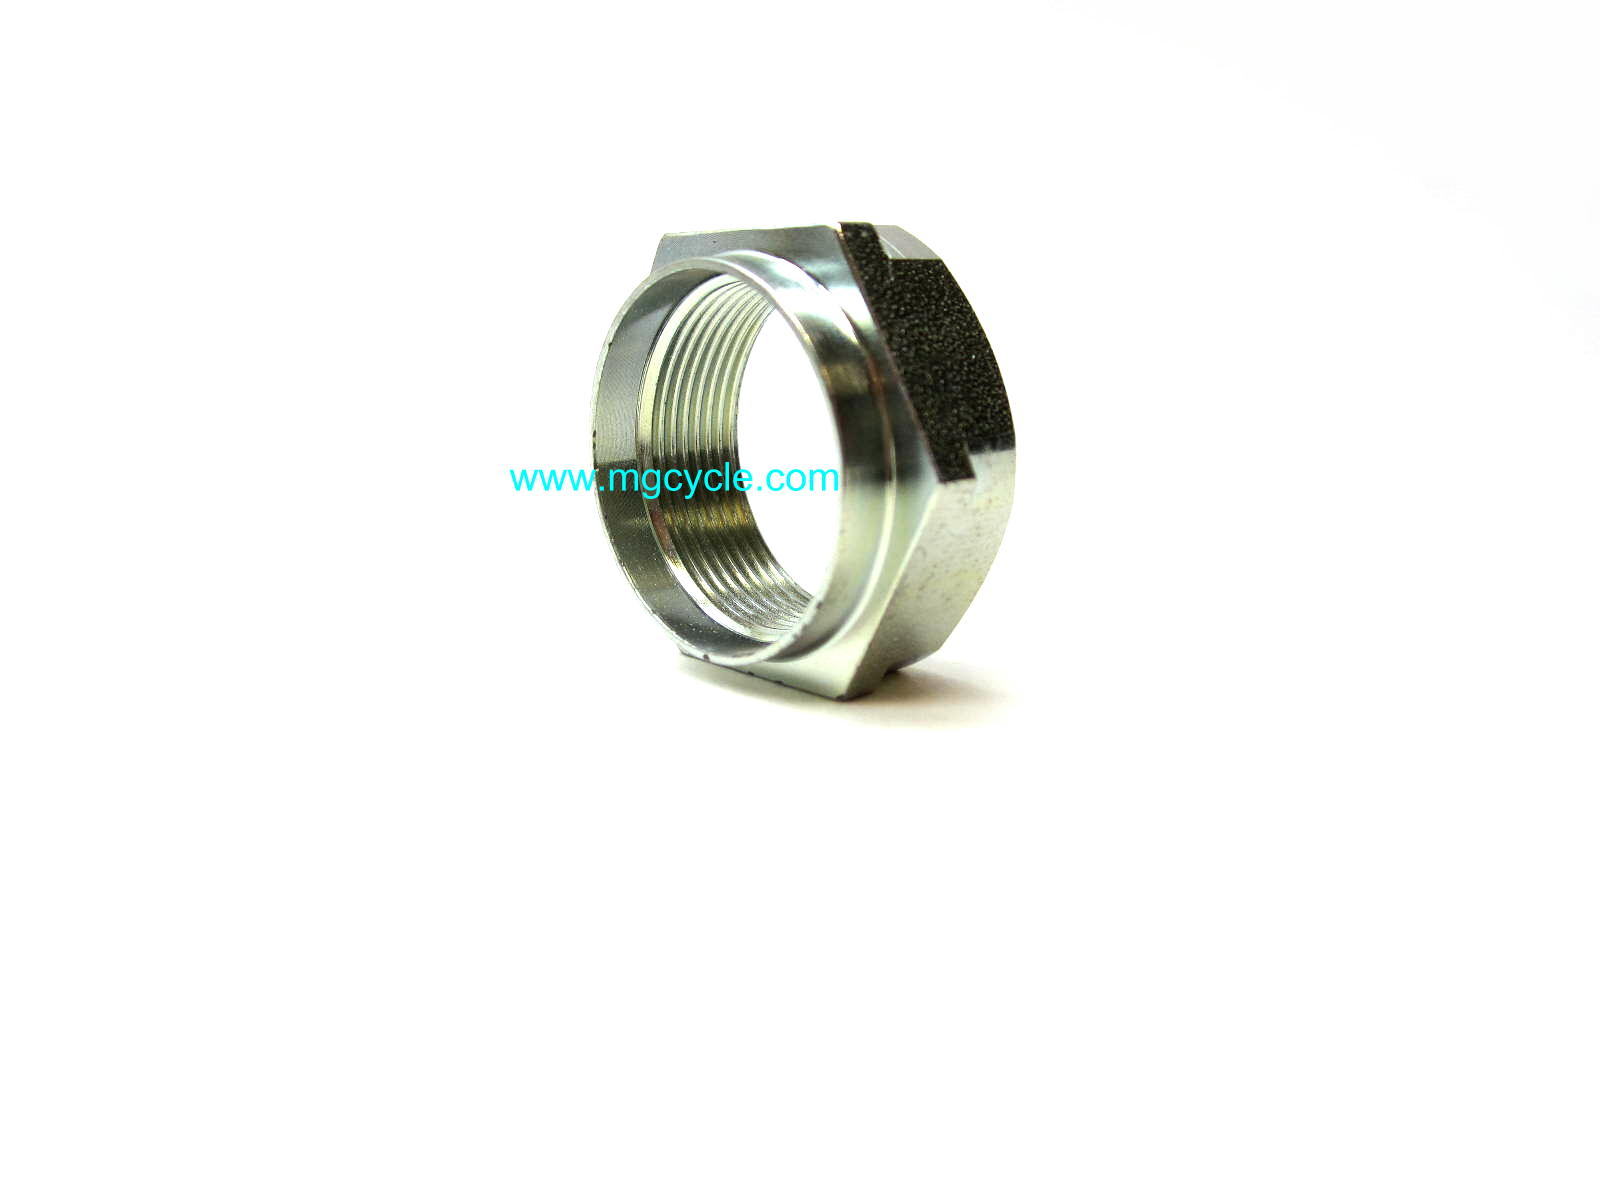 Output shaft securing nut can be used on input shaft GU14219310